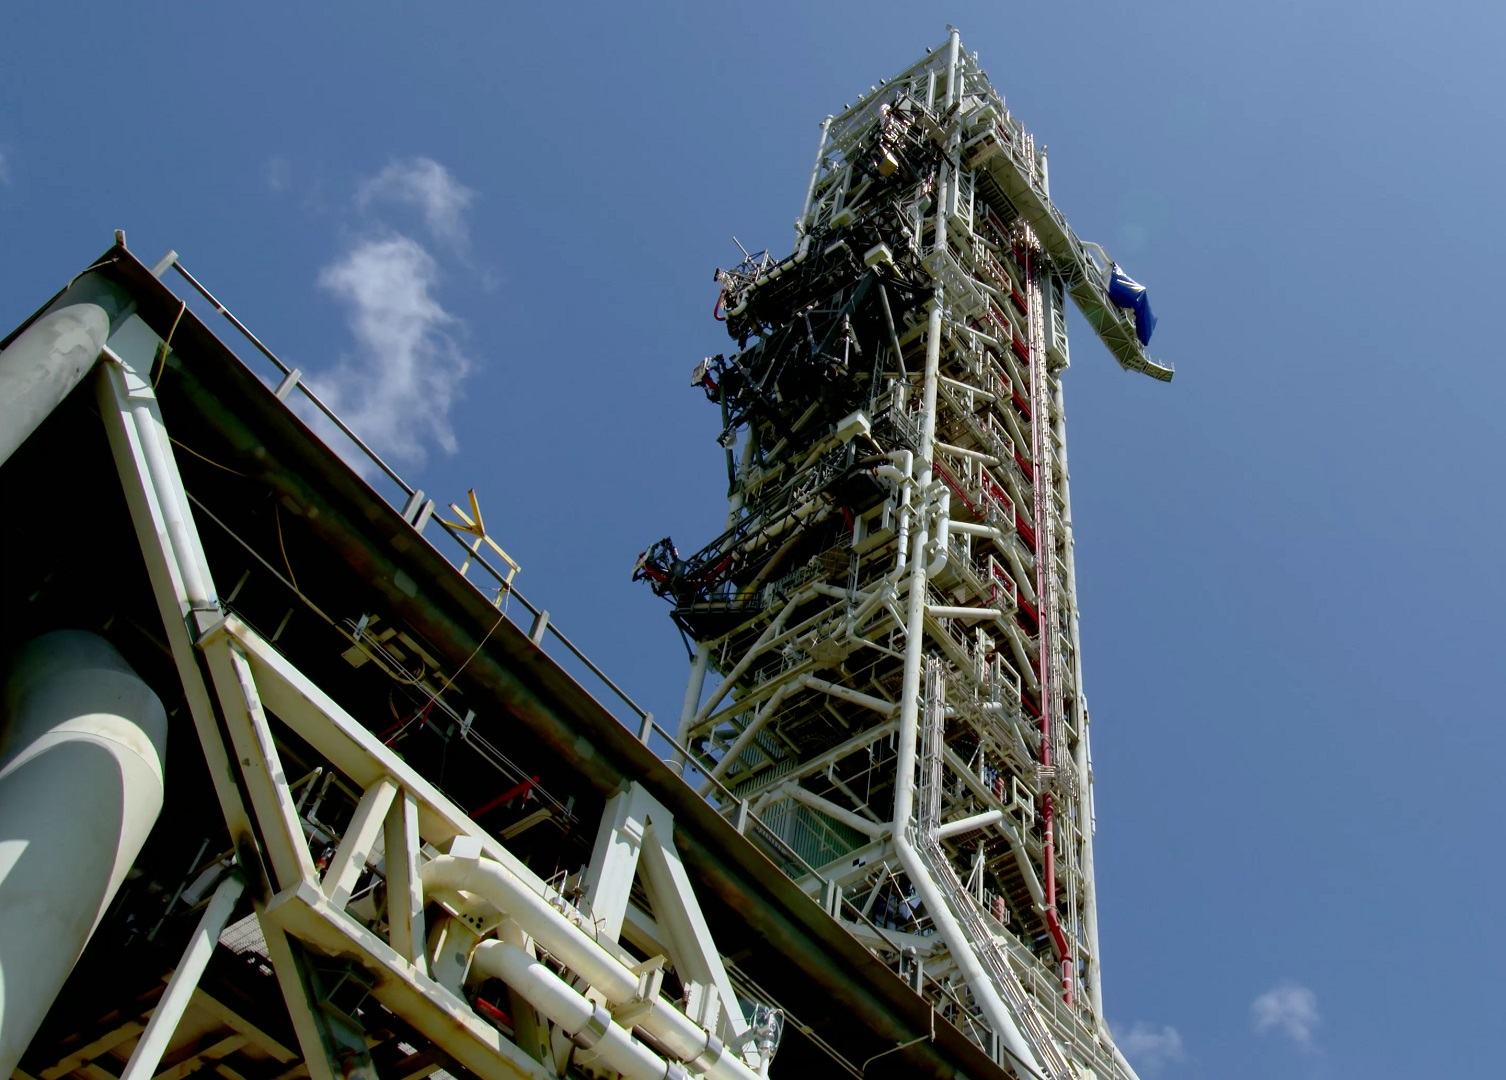 NASA EGS completes first SLS Mobile Launcher fueling tests